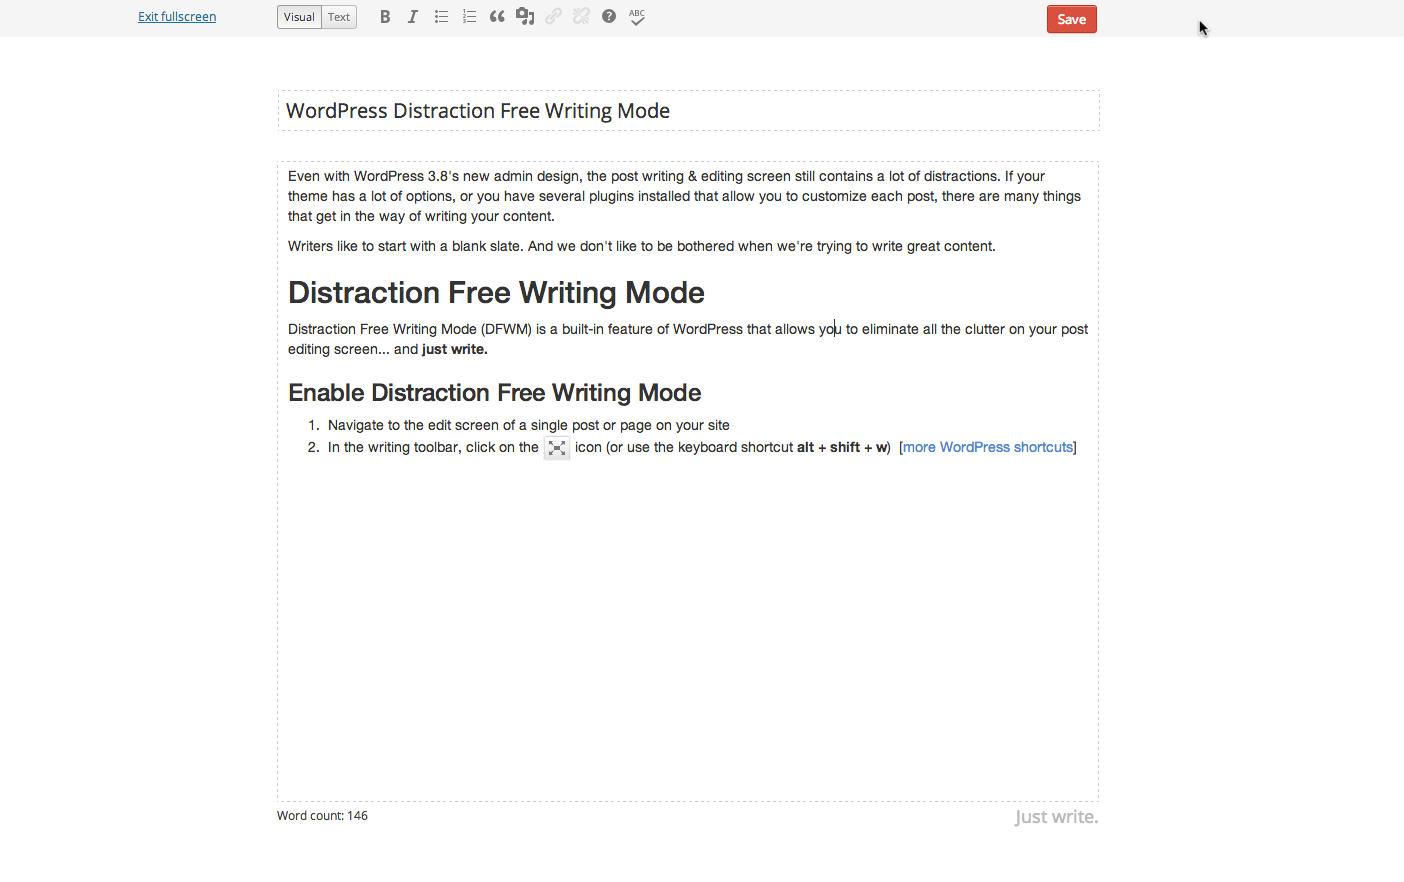 wordpress distraction writing mode a better wordpress  using distraction writing mode